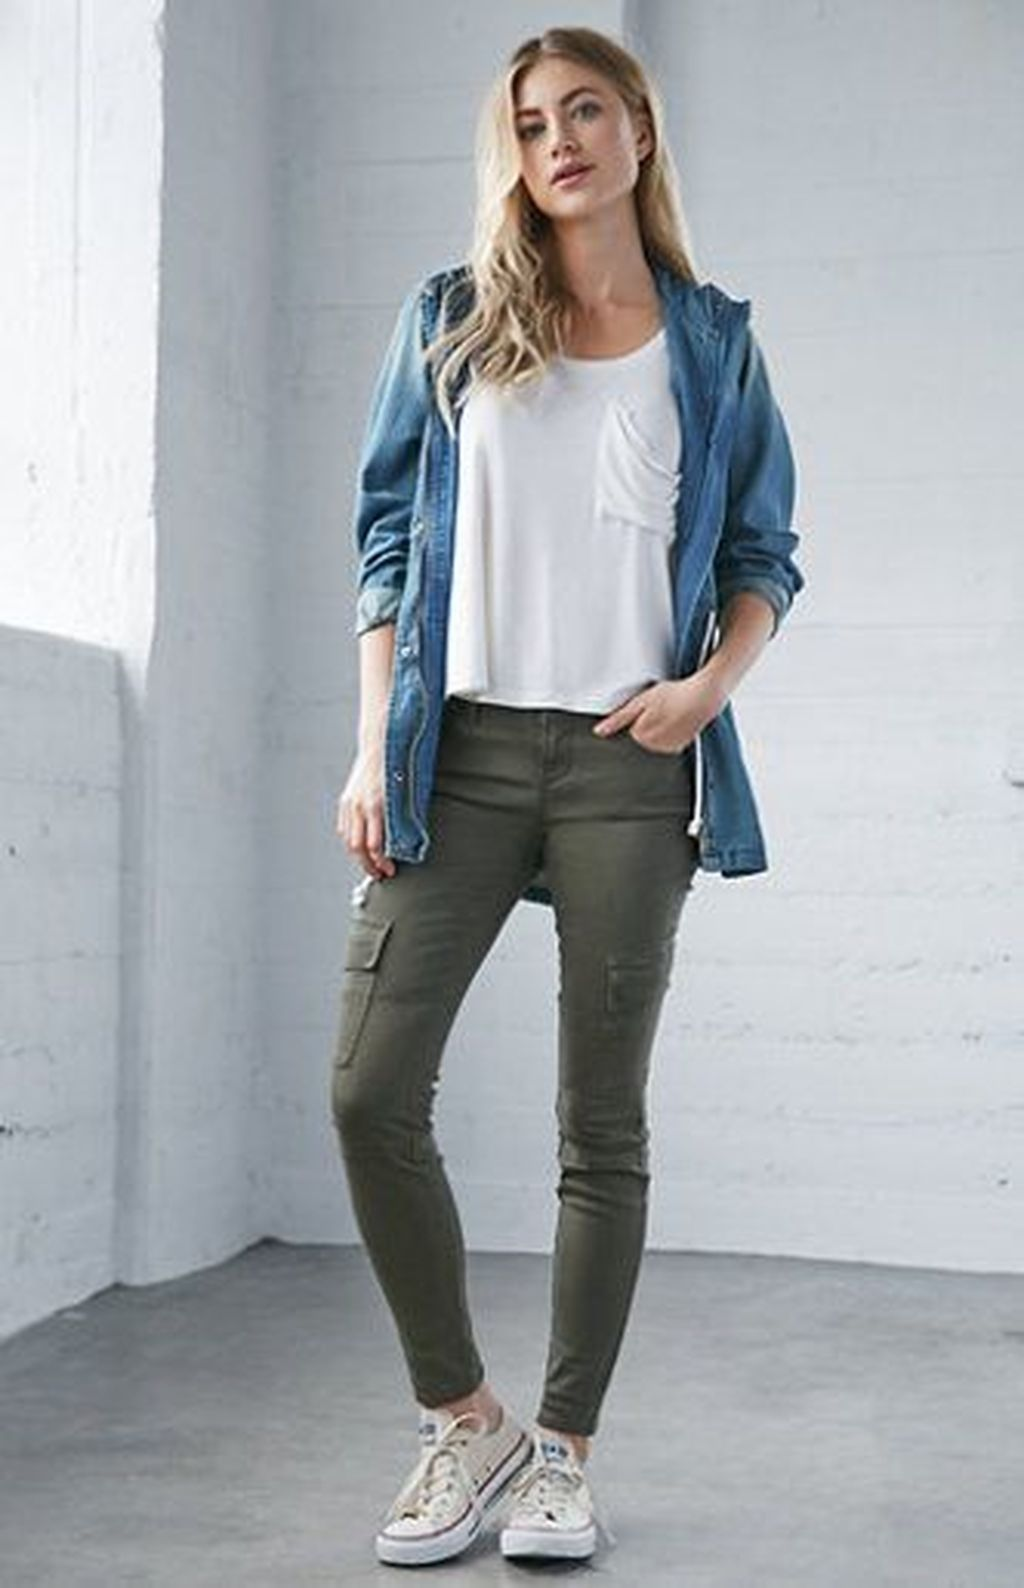 Cool 30 Inspiring Fashion Ideas To Wear Skinny Jeans More At Https Trendsoutfits Com 2018 09 25 Summer Fashion Outfits Skinny Clothes Low Rise Skinny Jeans